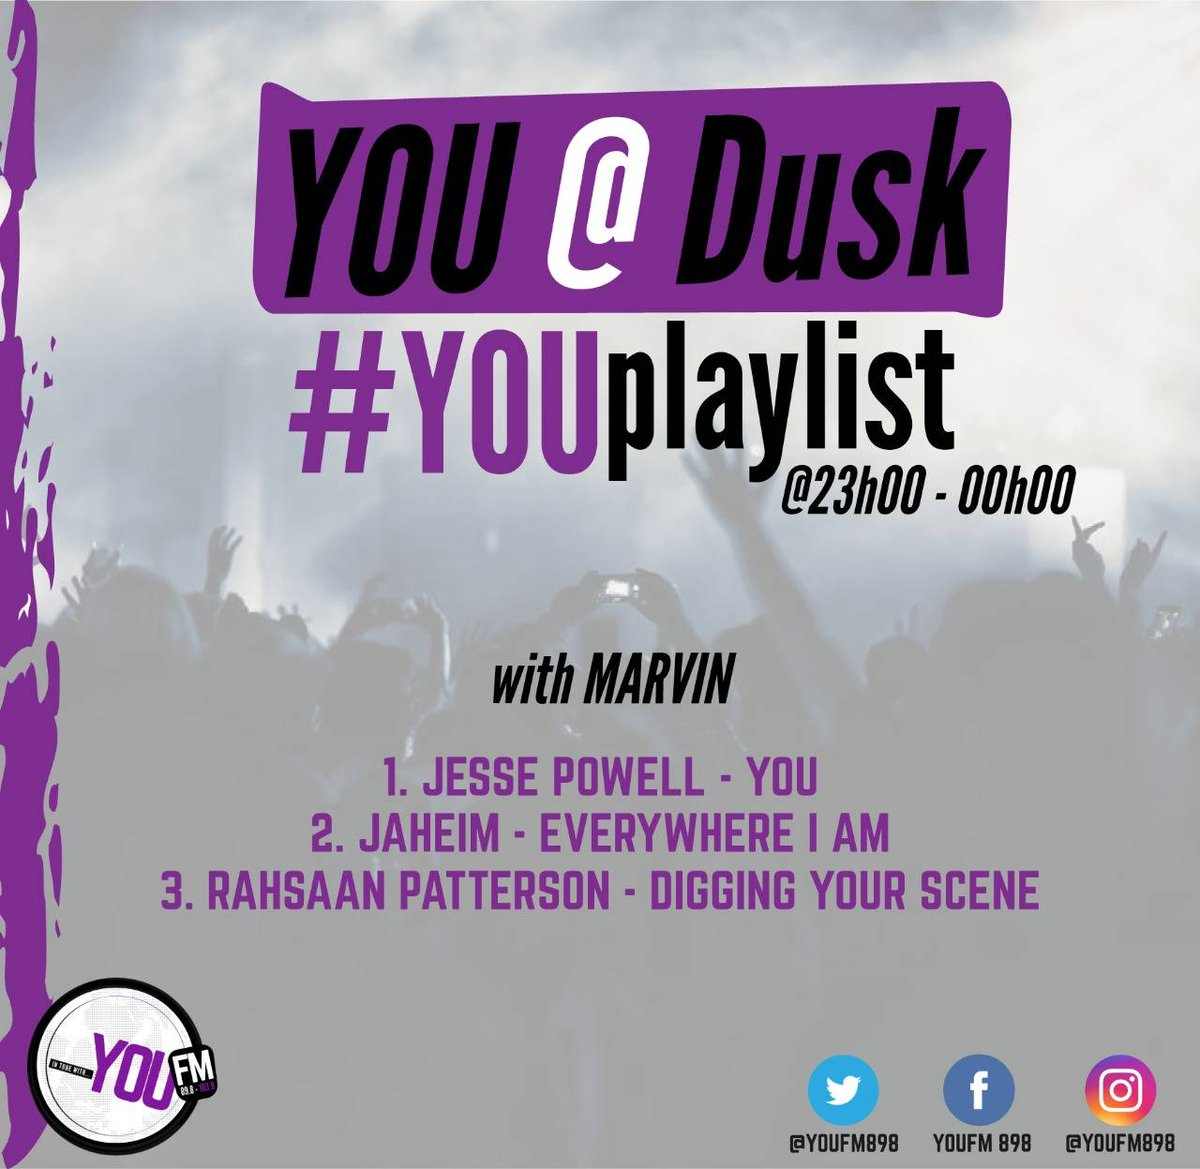 Tune into the sounds of Mariah Carey, Jaheim and more on #YOUPlaylist  #YOUAtDusk with @vincentmaseko1  DSTV Channel 842  #CelebratingYOU #YOUInspireUs